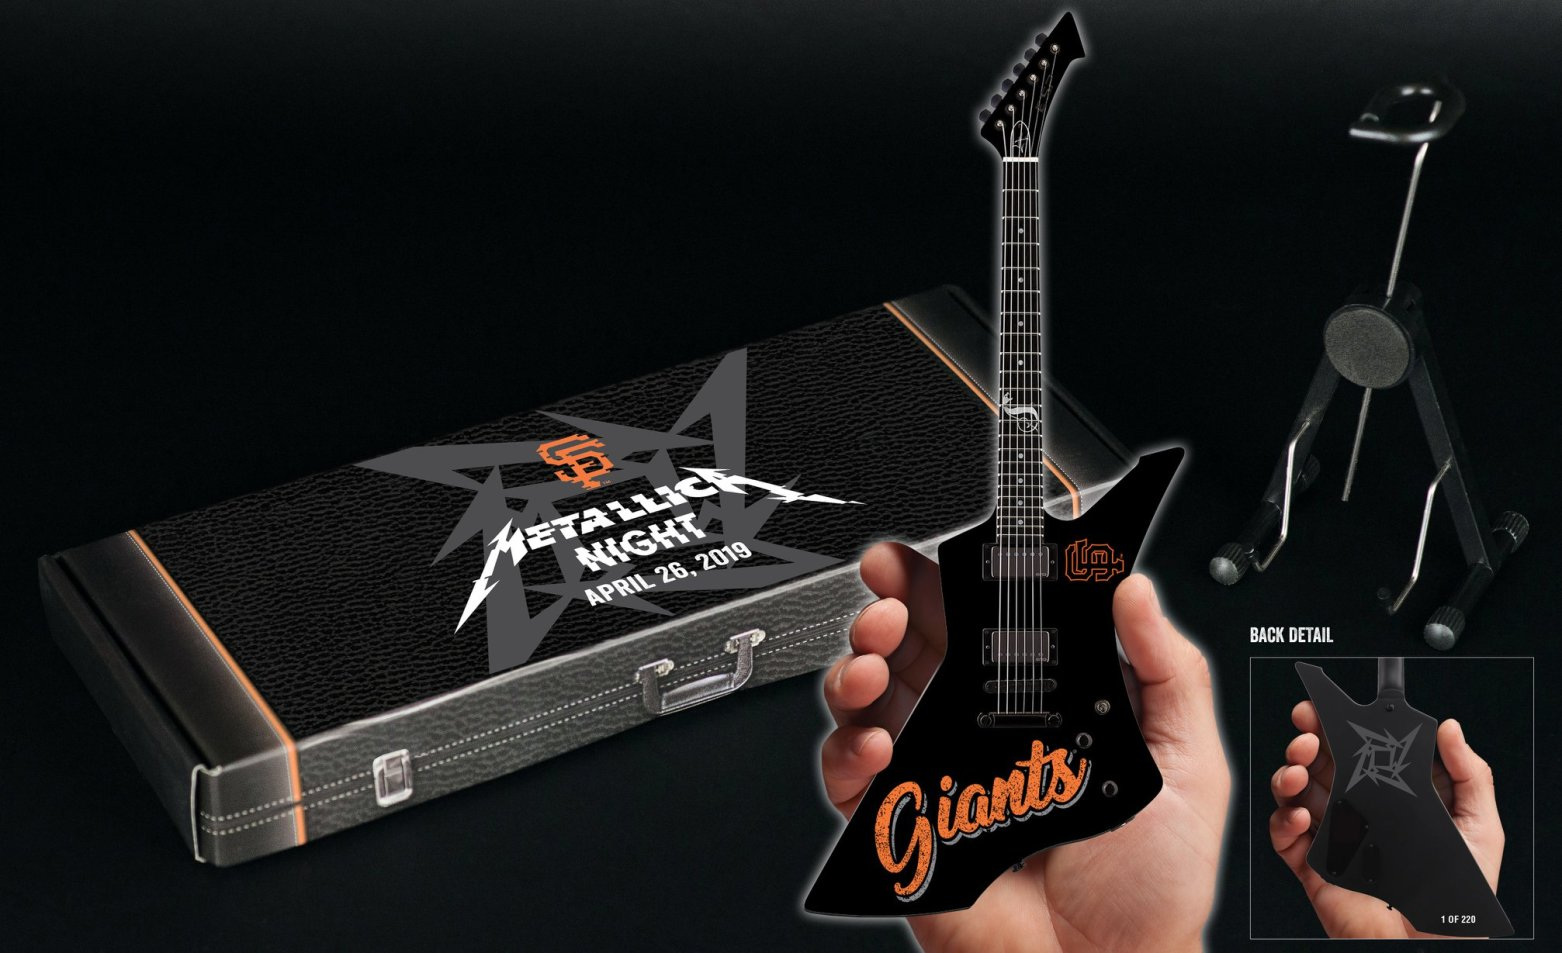 SF Giants 2019 Metallica Night Custom Shape Mini Guitar and Gift Box Promo Giveaway